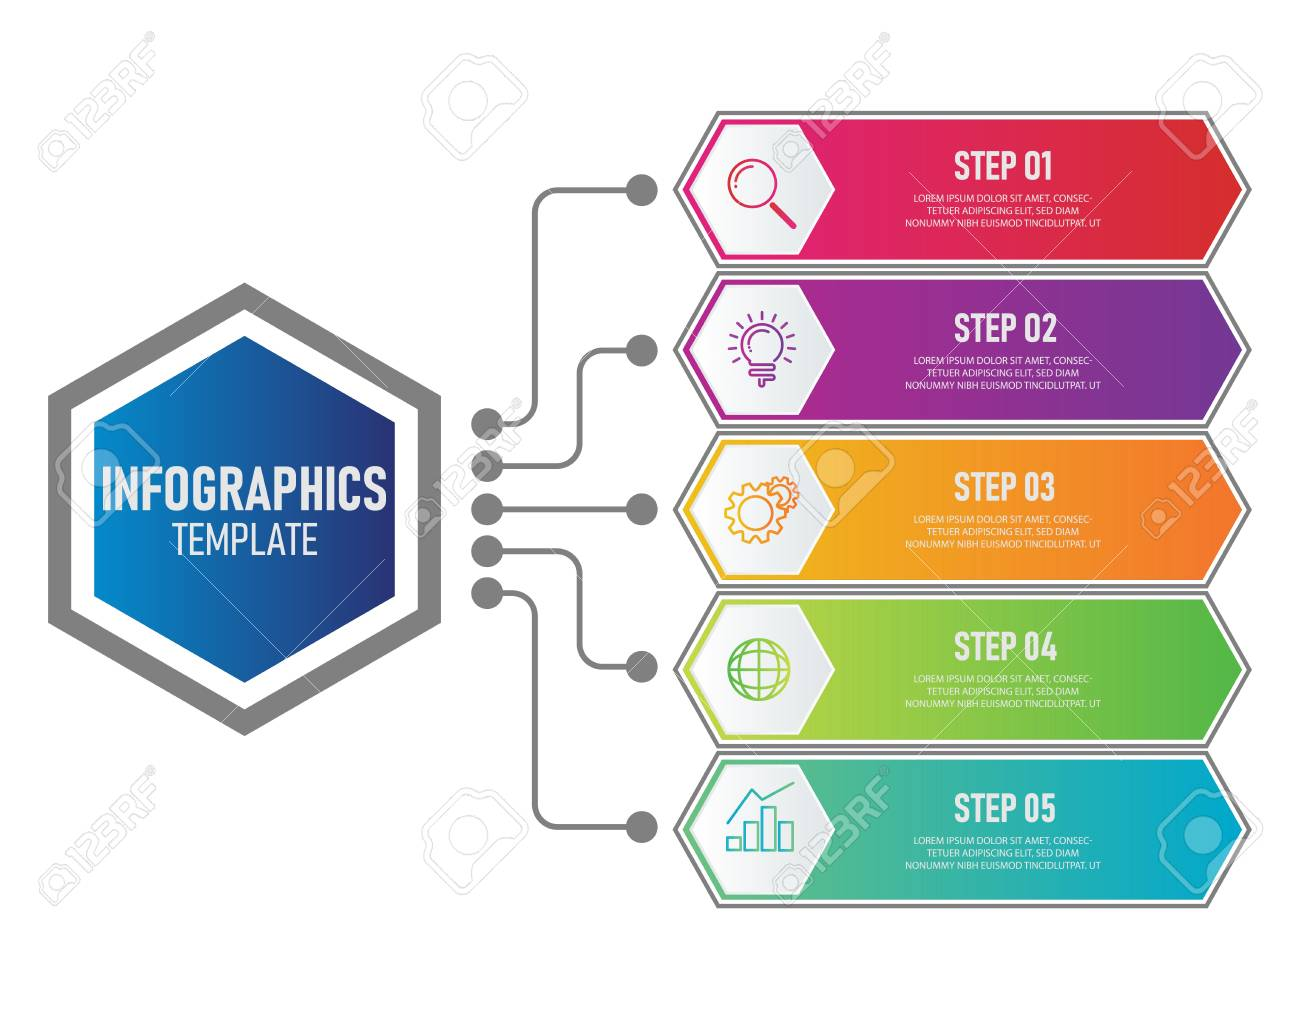 Business Infographics Template With Colorful Diagram Workflow Royalty Free Cliparts Vectors And Stock Illustration Image 127730890